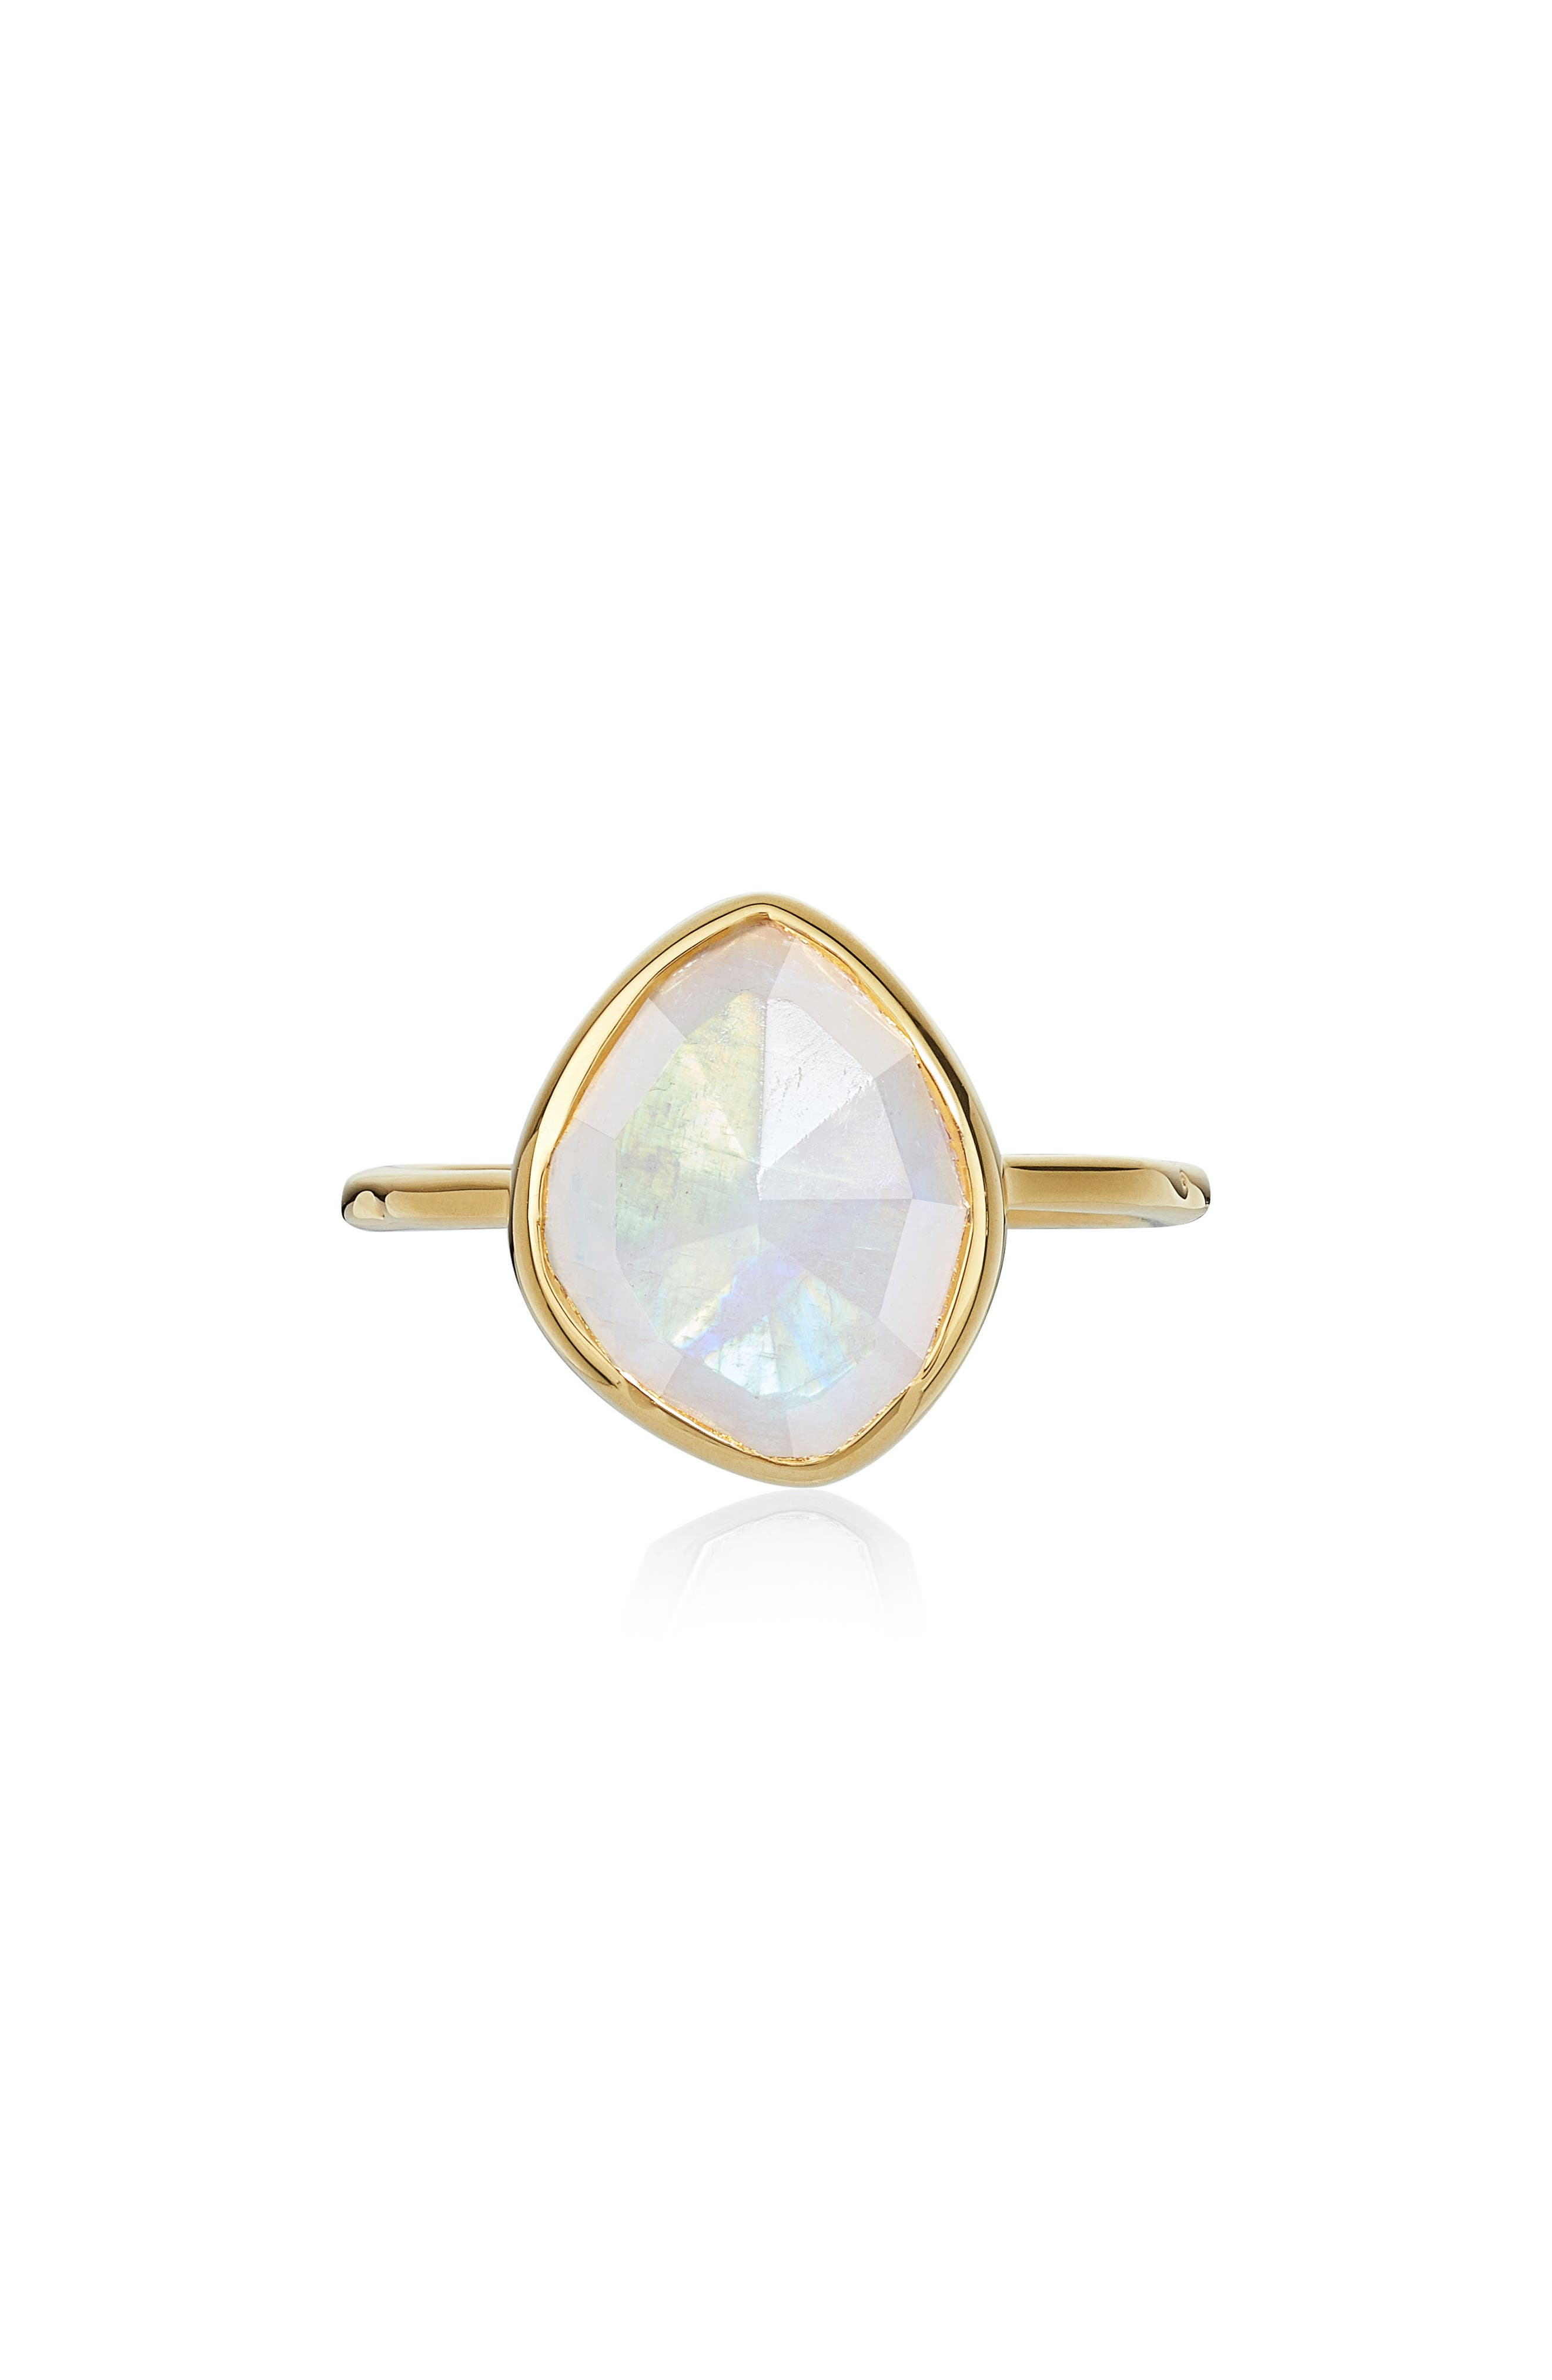 Siren Small Nugget Stacking Ring,                         Main,                         color, YELLOW GOLD/ MOONSTONE